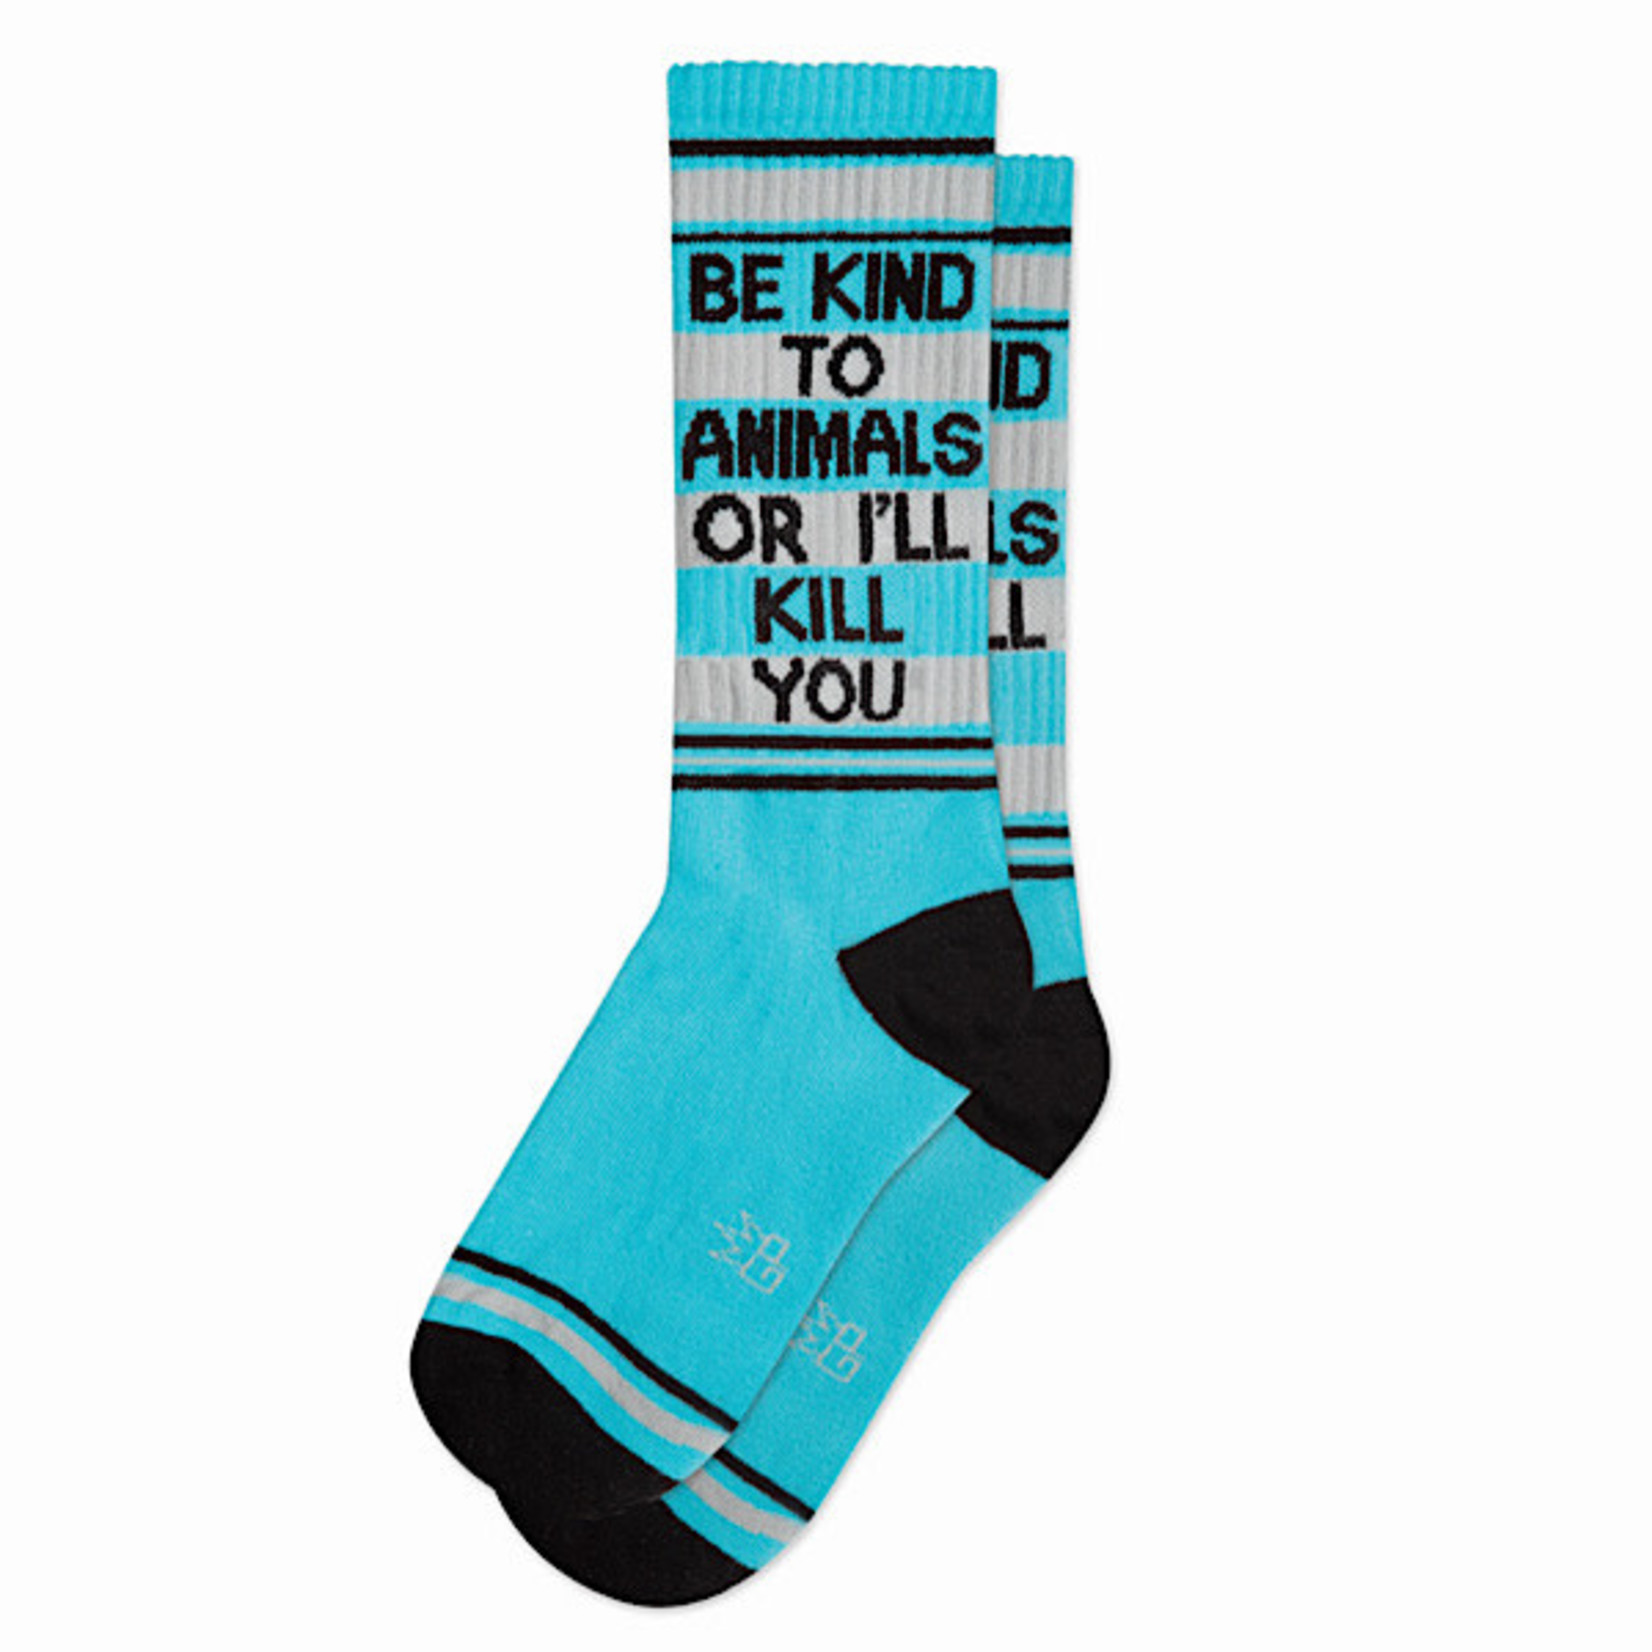 Socks (Unisex) - Be Kind To Animals Or I'll Kill You